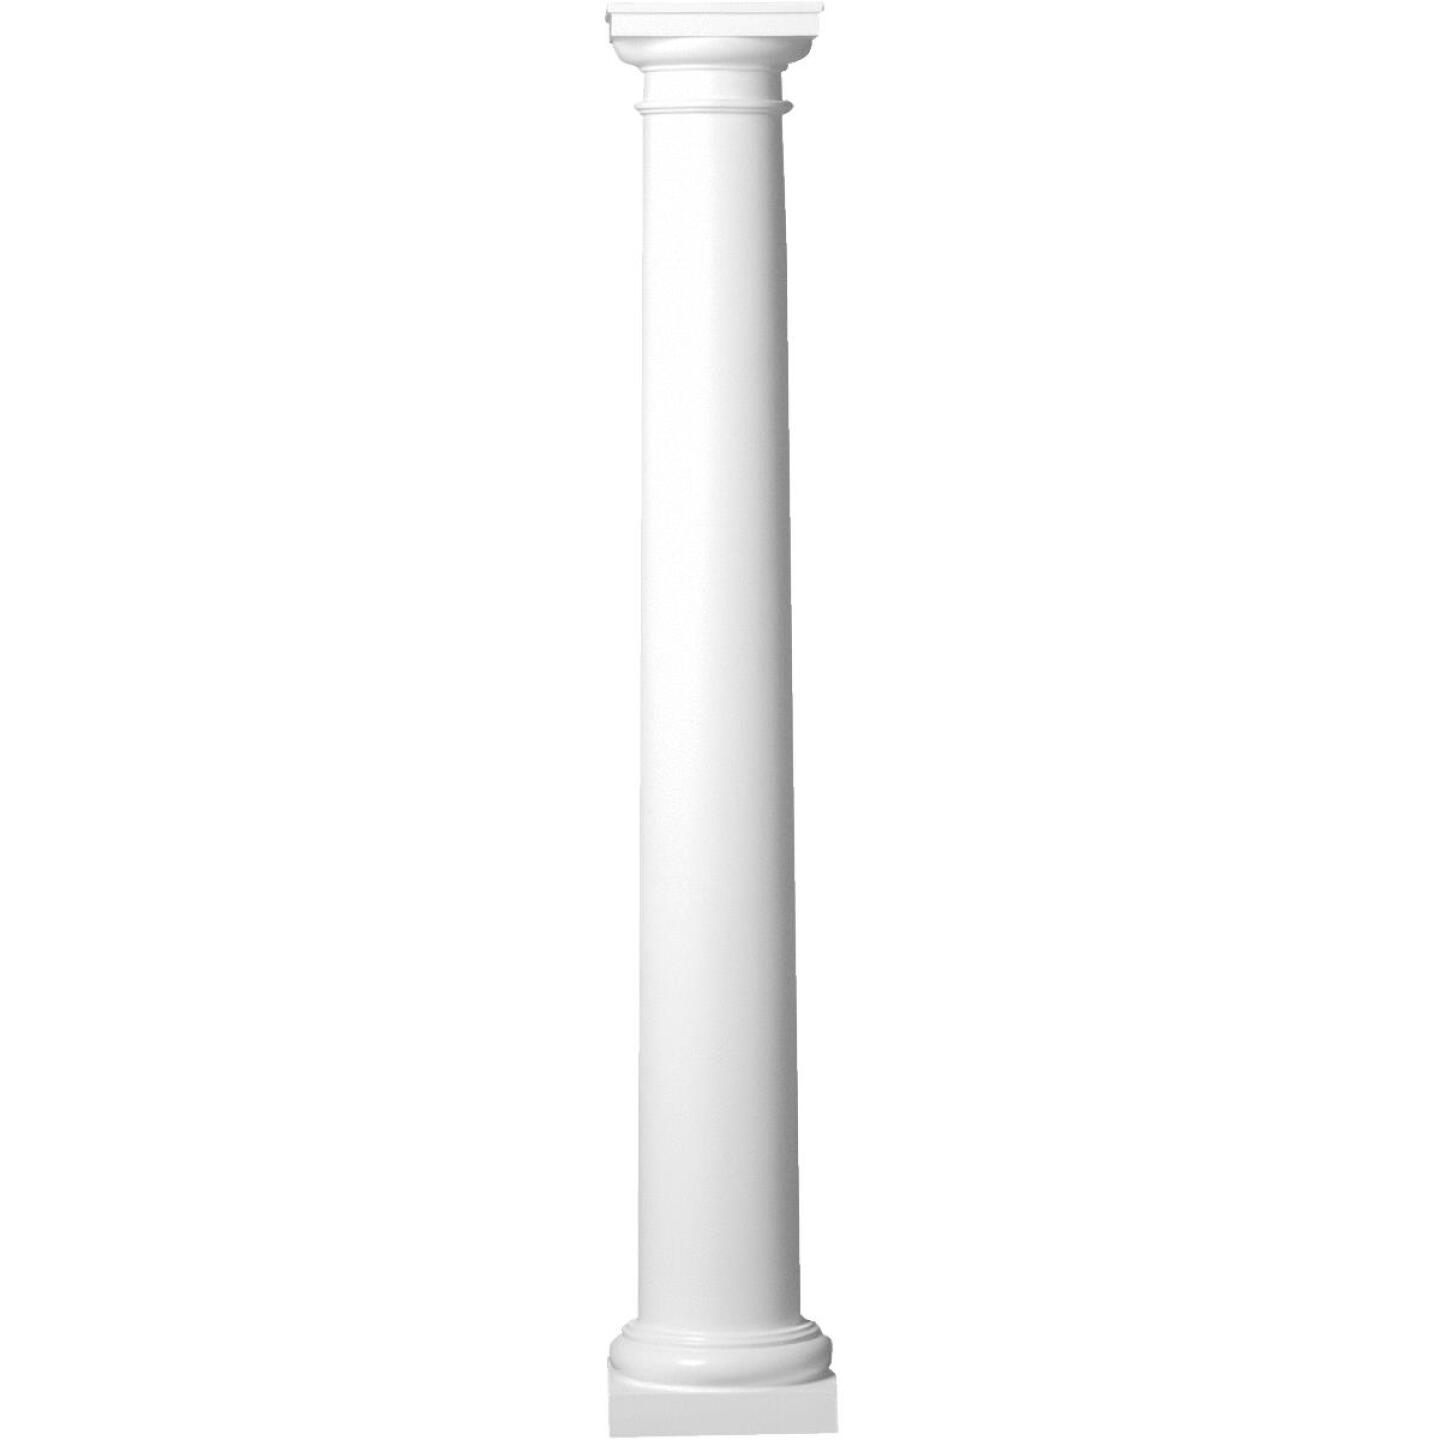 Crown Column 8 In. x 10 Ft. Unfinished Round Fiberglass Column Image 1